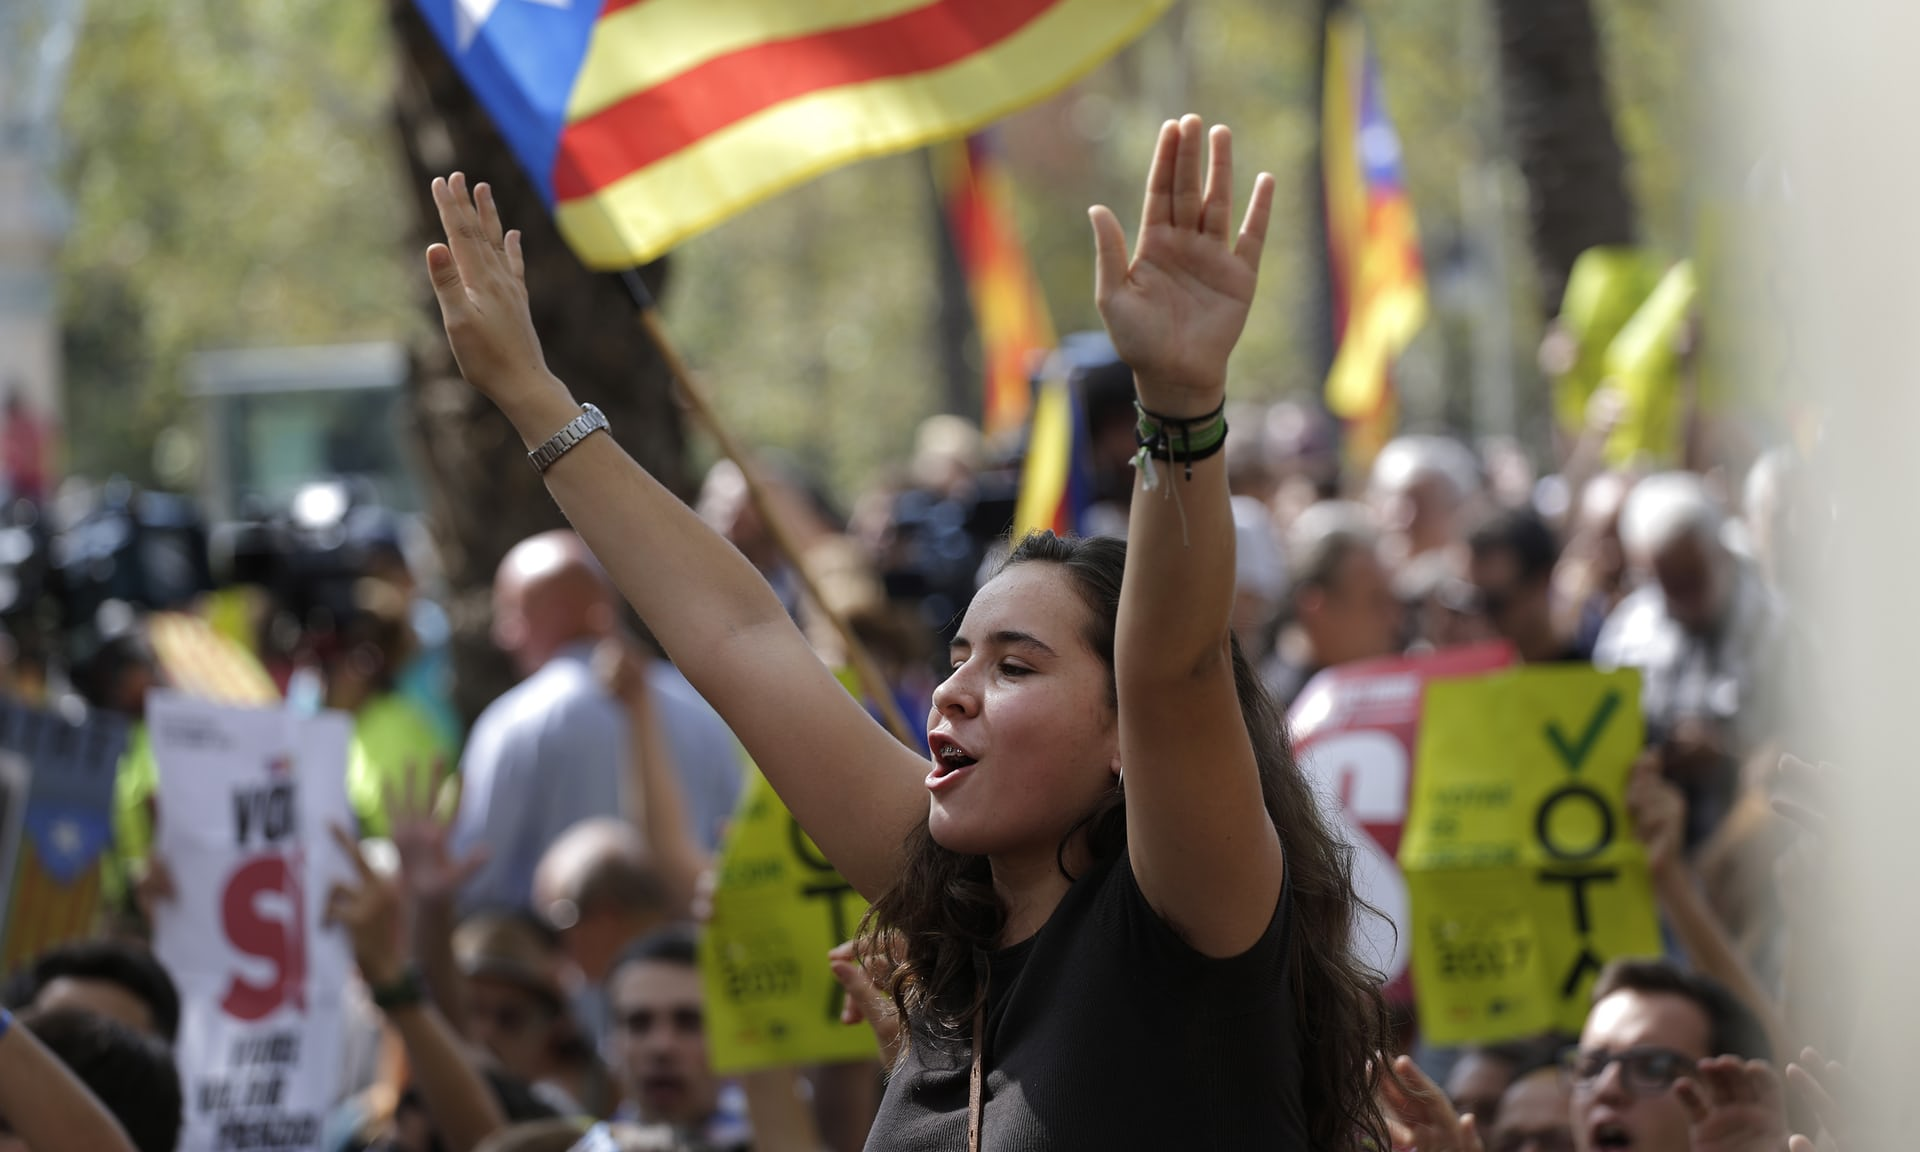 Catalan independence protestor